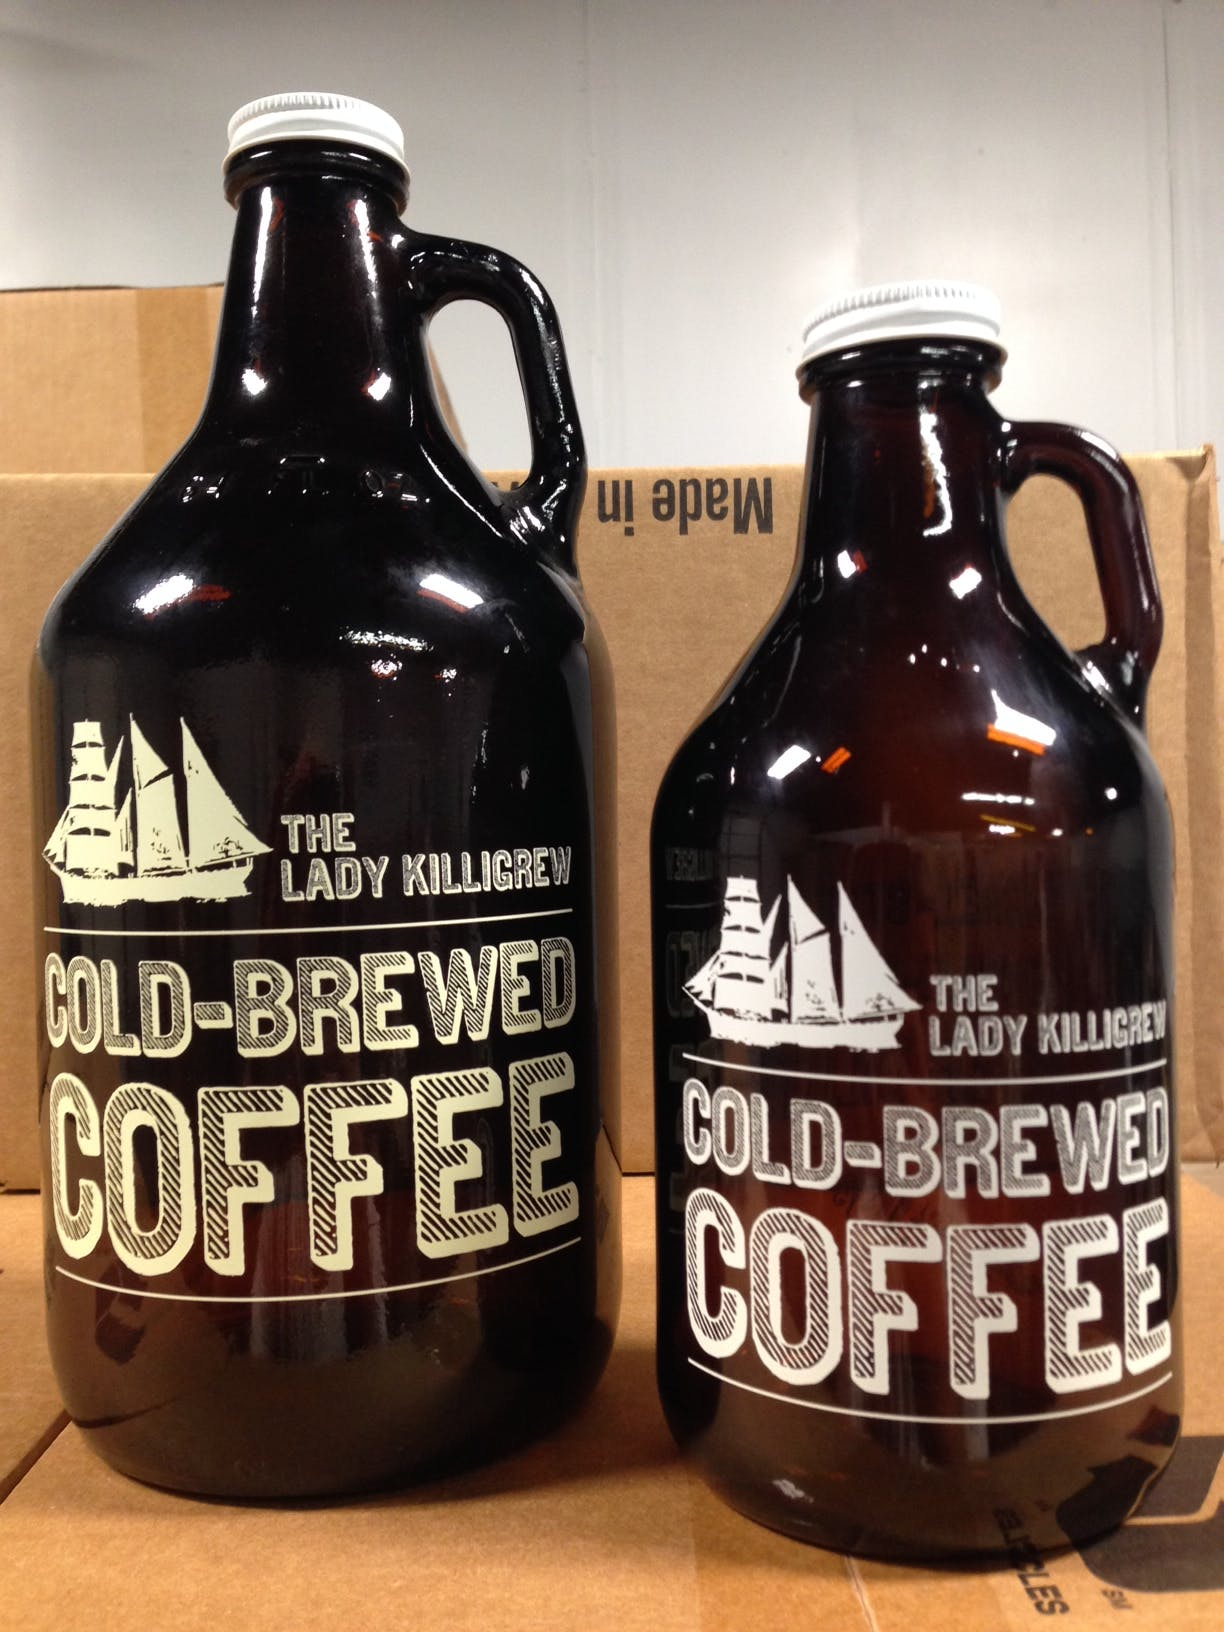 Coffee Growler Growler sold by Flour City Growlers